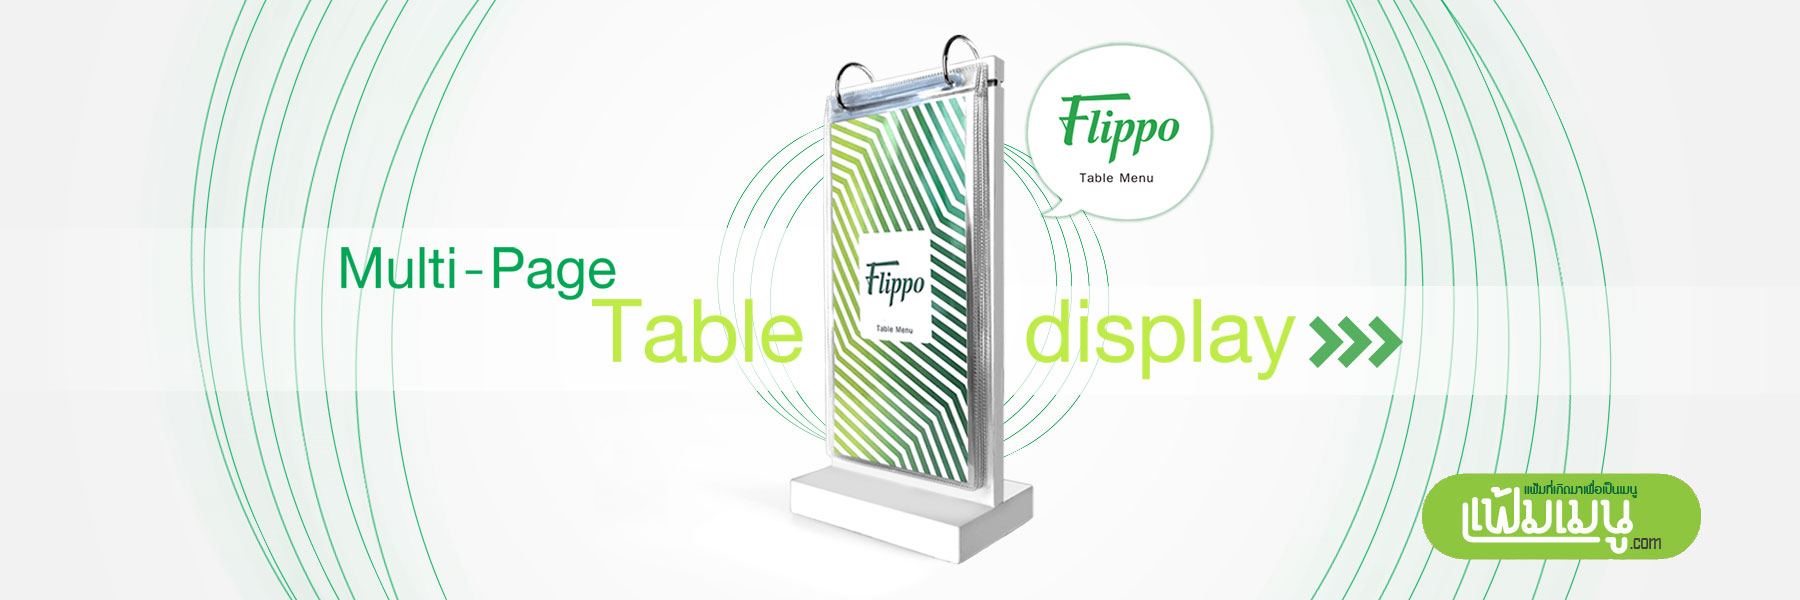 Multi-page Table Display - Flippo Thailand